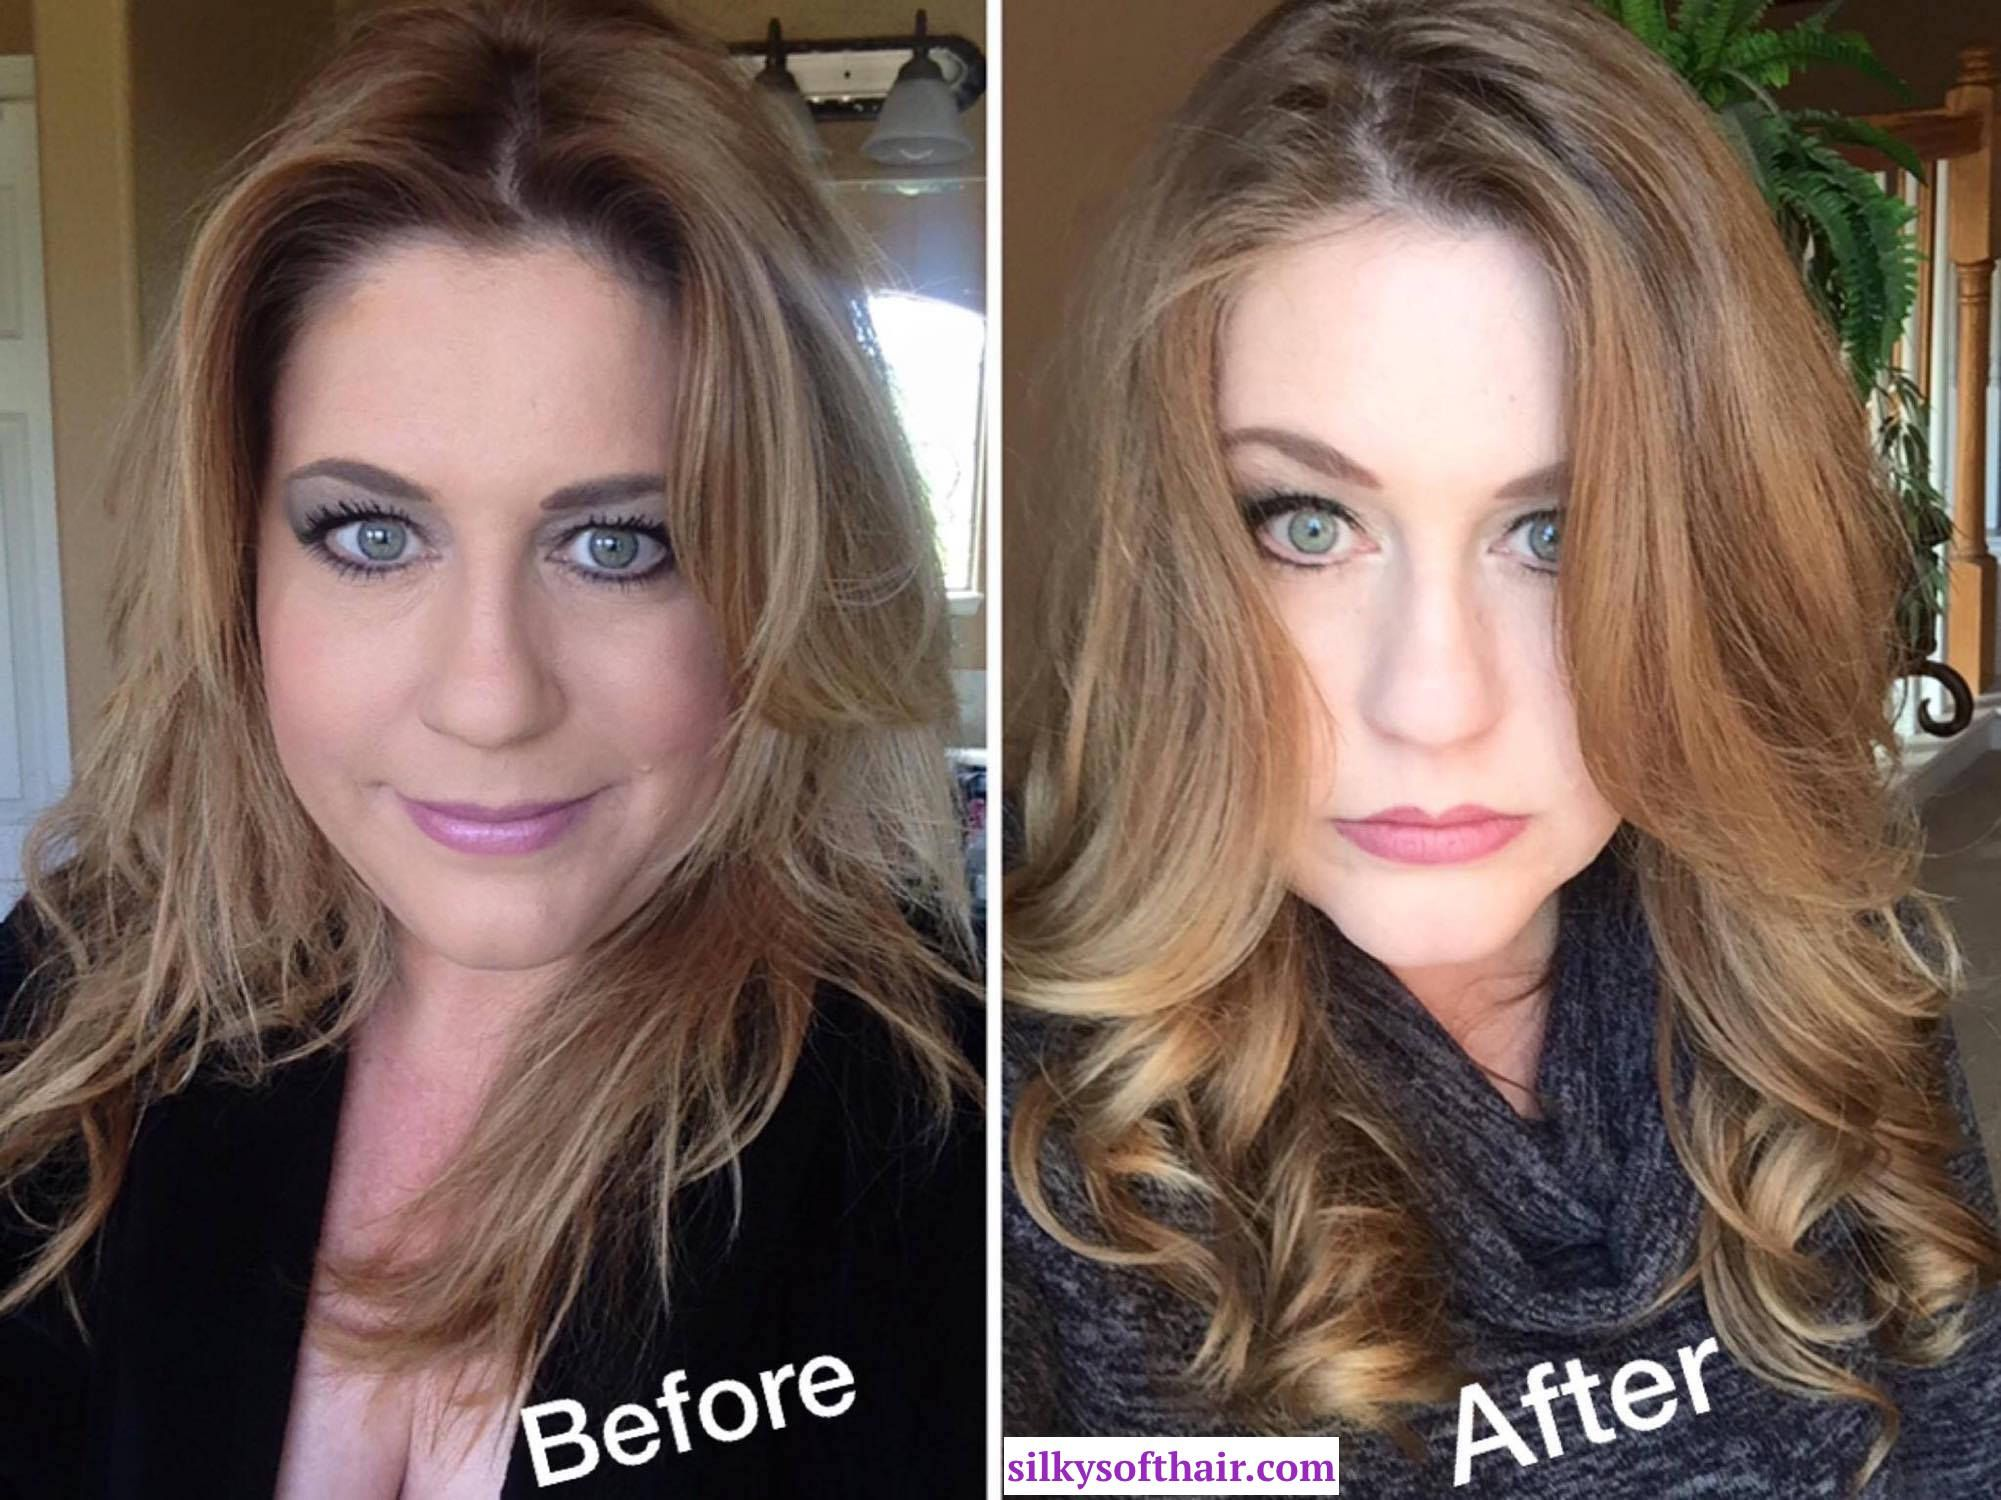 Do you want thicker fuller hair??? Monat's Volume system